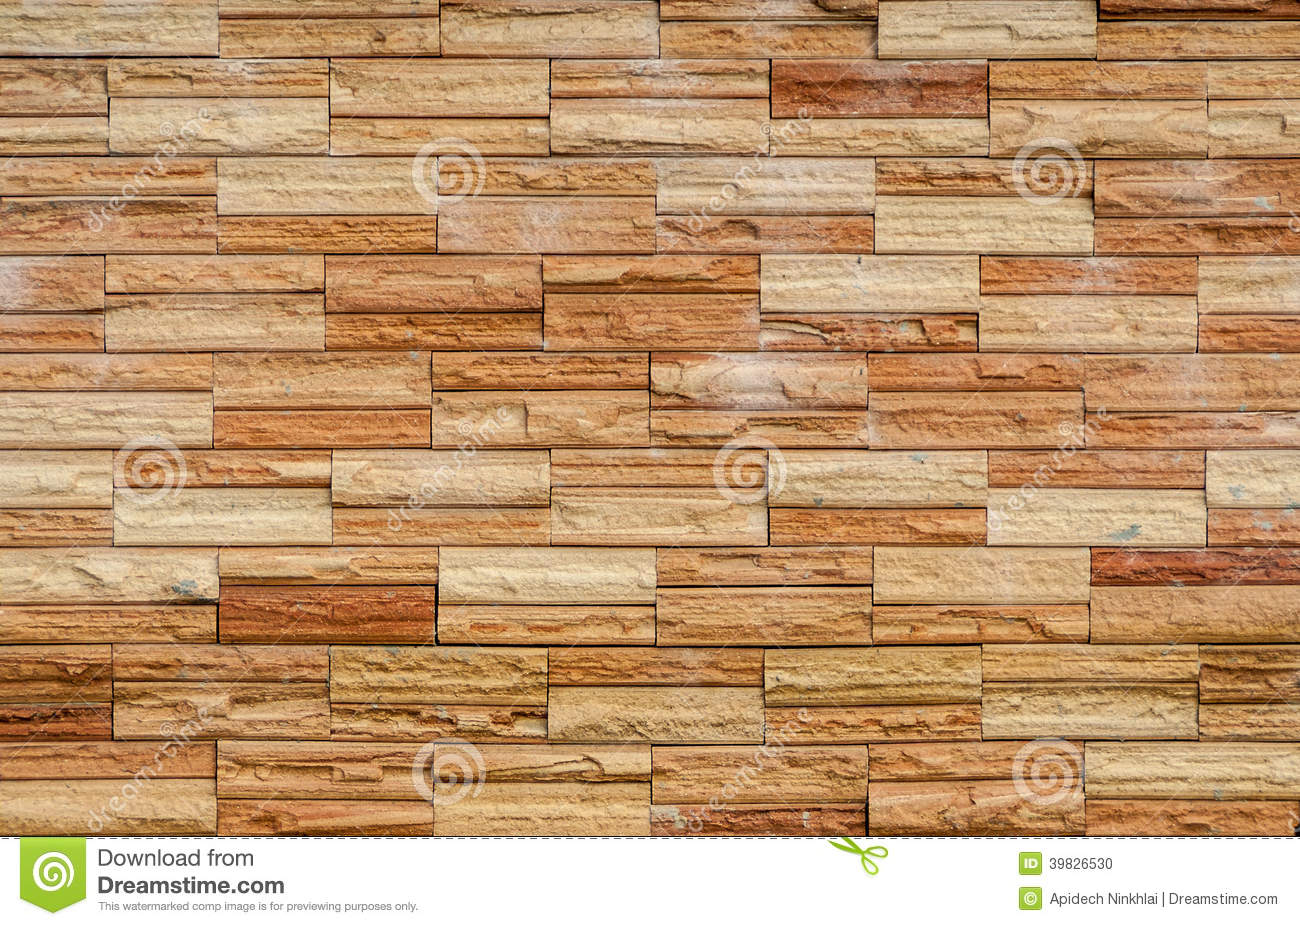 How To Add Brick To A Wall The Background And Texture Of Modern Brick Wall Stock